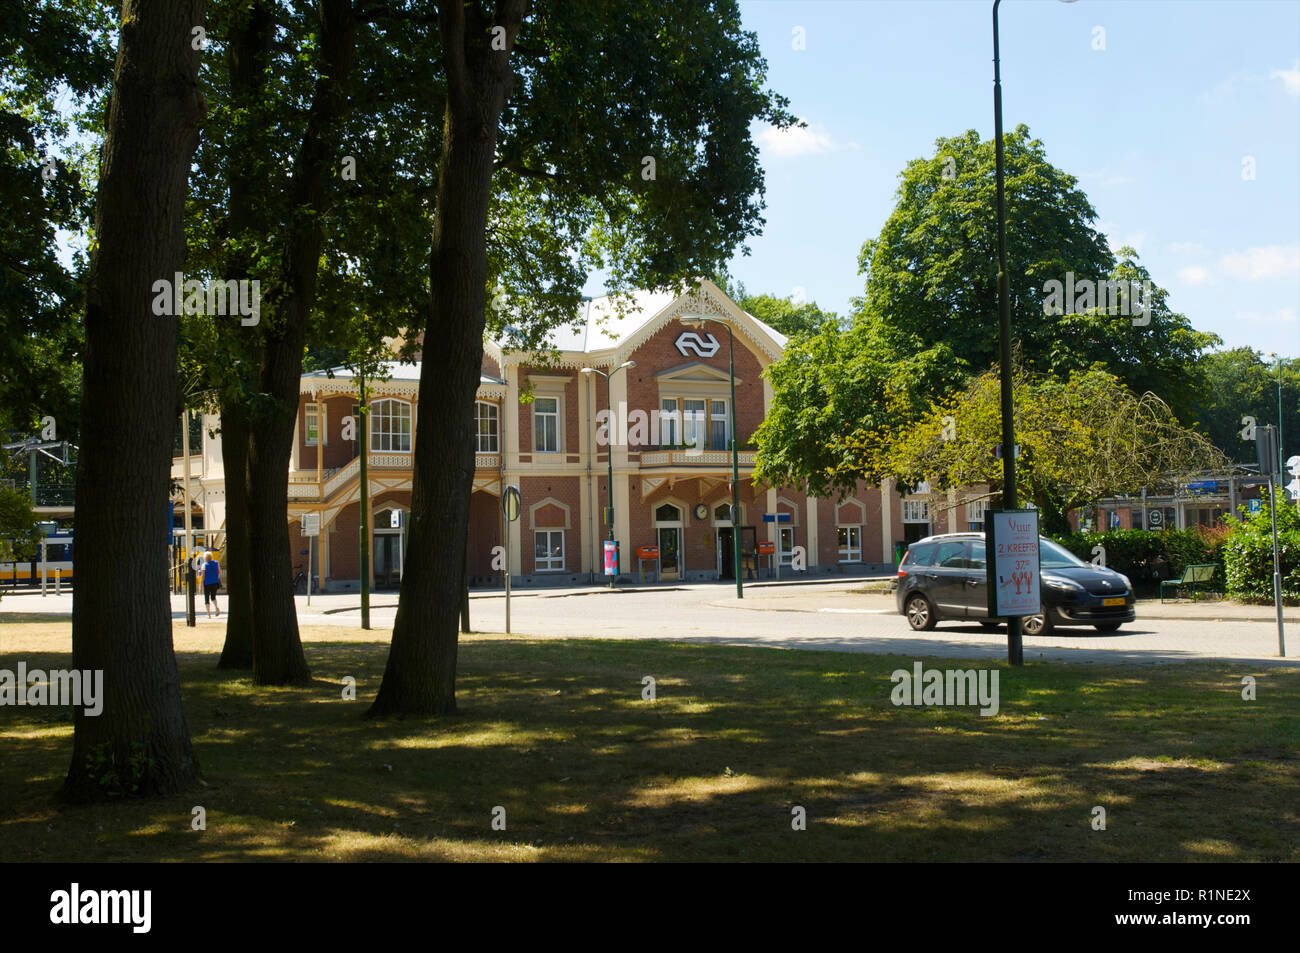 The front side of the railway station used for the Dutch Royal family with a  parked car in Baarn, the Netherlands - Stock Image